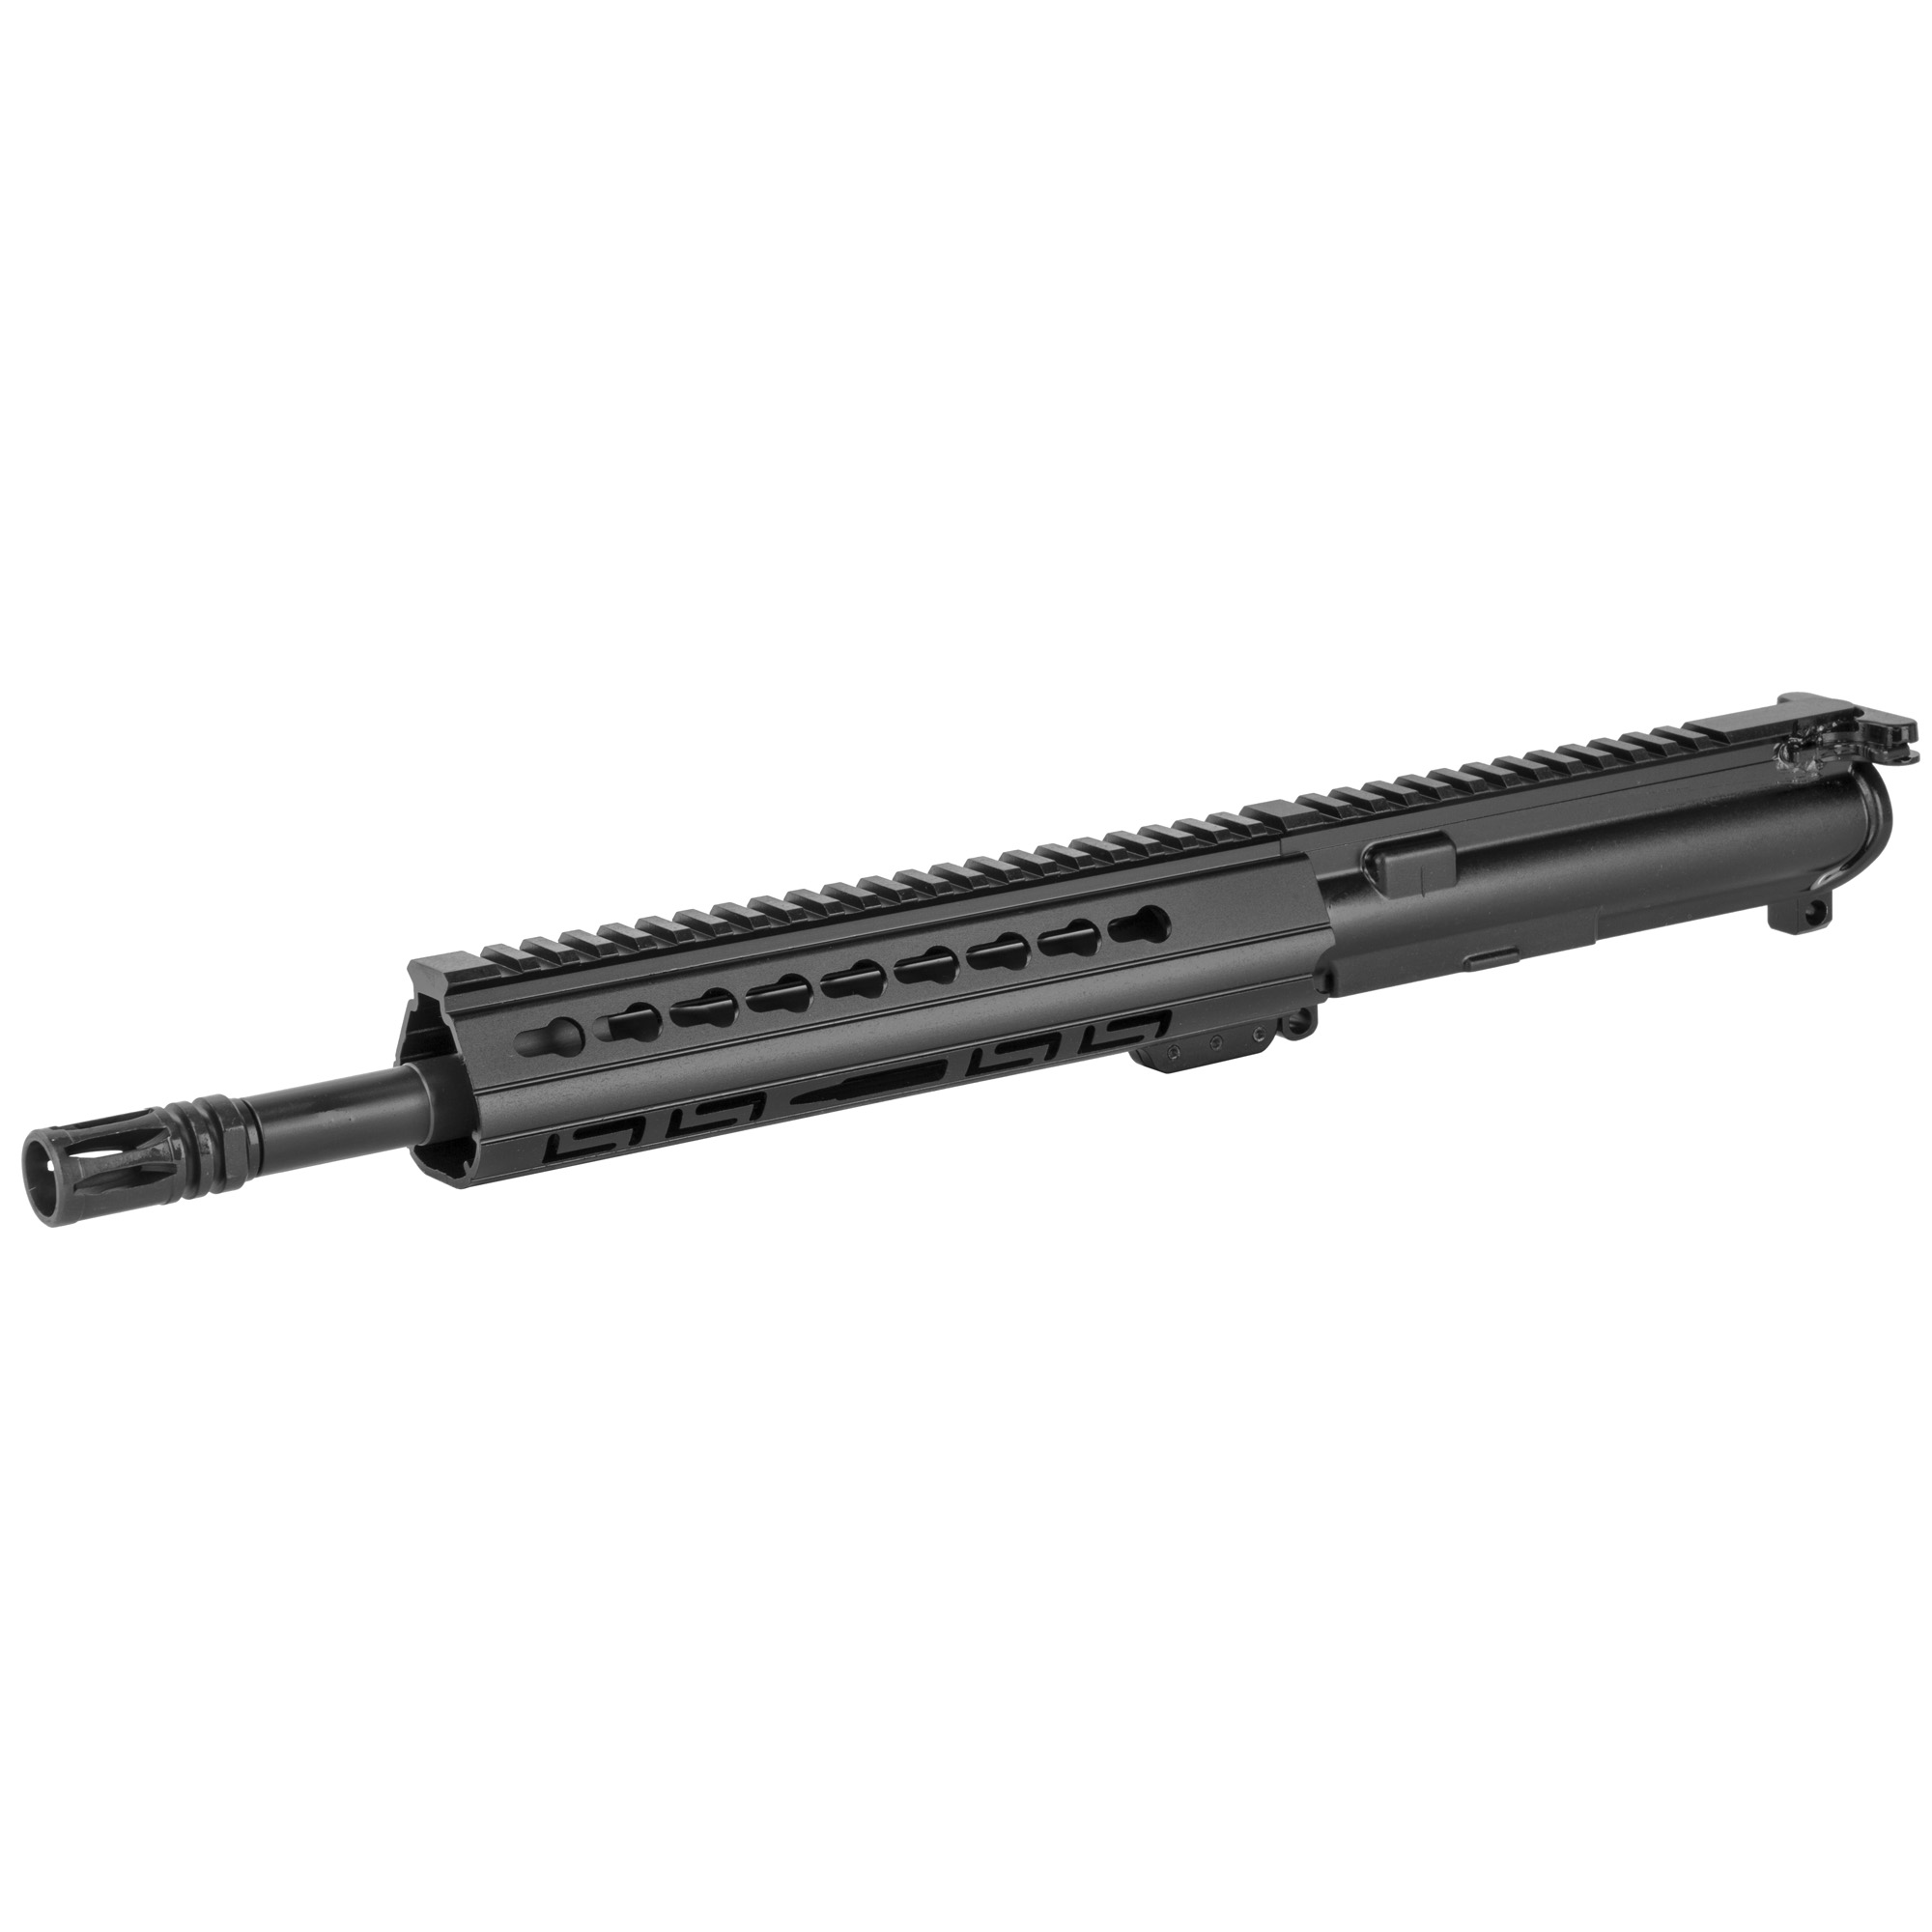 "The Luth-AR 11.5"" Lightweight Complete Upper Barrel Assembly starts with a Luth-AR 11.5"""" 5.56mm Lightweight barrel made from 4150 Chrome Molly with a 1-9"" twist mated to a Luth-AR A3 Flattop receiver which includes a Luth-AR bolt carrier"" charging handle"" forward assist and ejection port cover. The upper is then topped off with a Luth-AR lo-profile gas system and the Luth-AR ergonomic 9"" Palm Handguard(R) with KeyMod slots and a Picatinny top-rail."